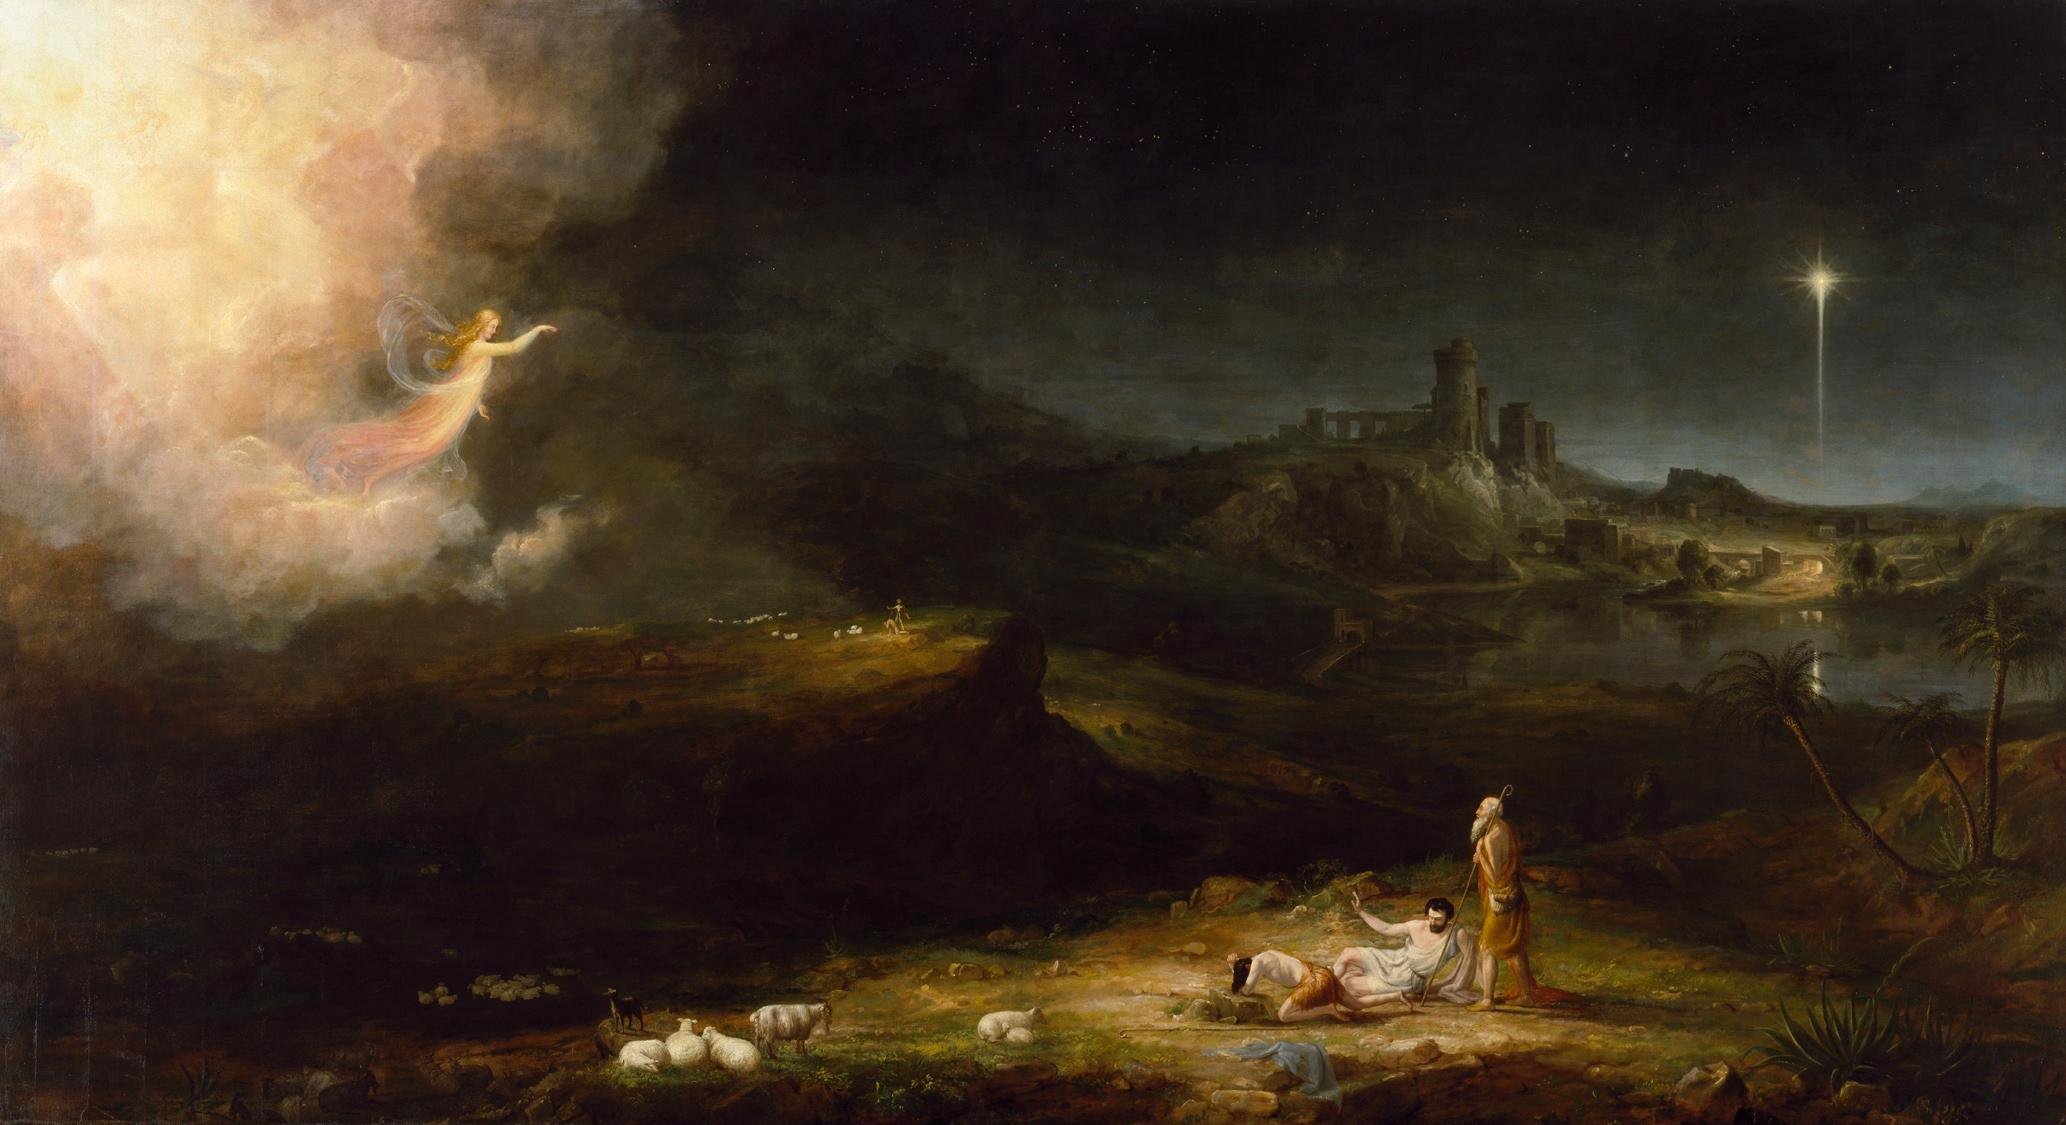 Thomas Cole – The Angel Appearing to the Shepherds